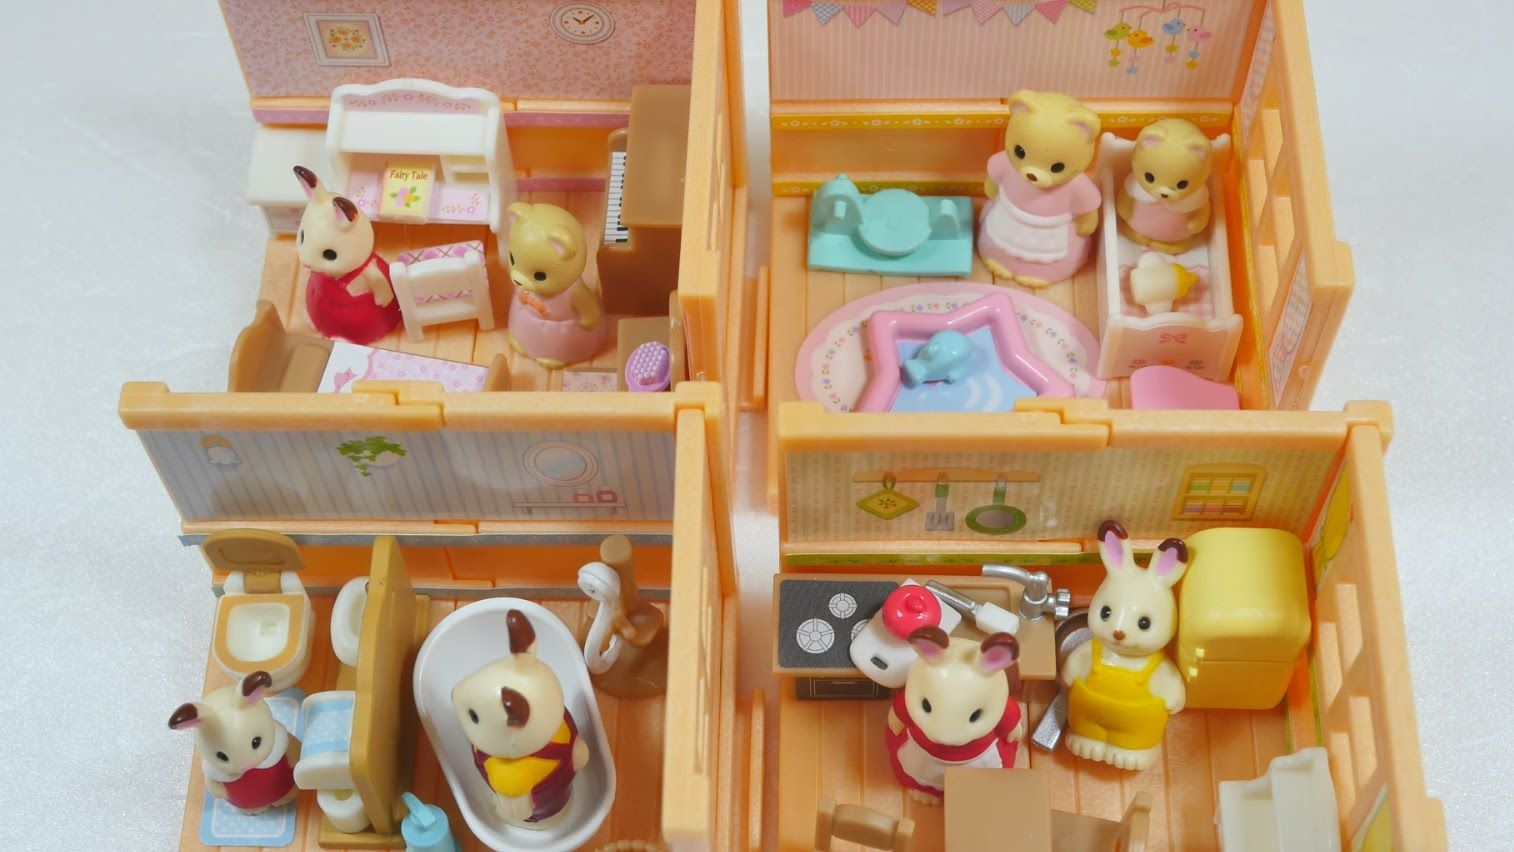 Toy Capsule Toys シルバニア ガシャポン Epoch Sylvanian Families Gashapon